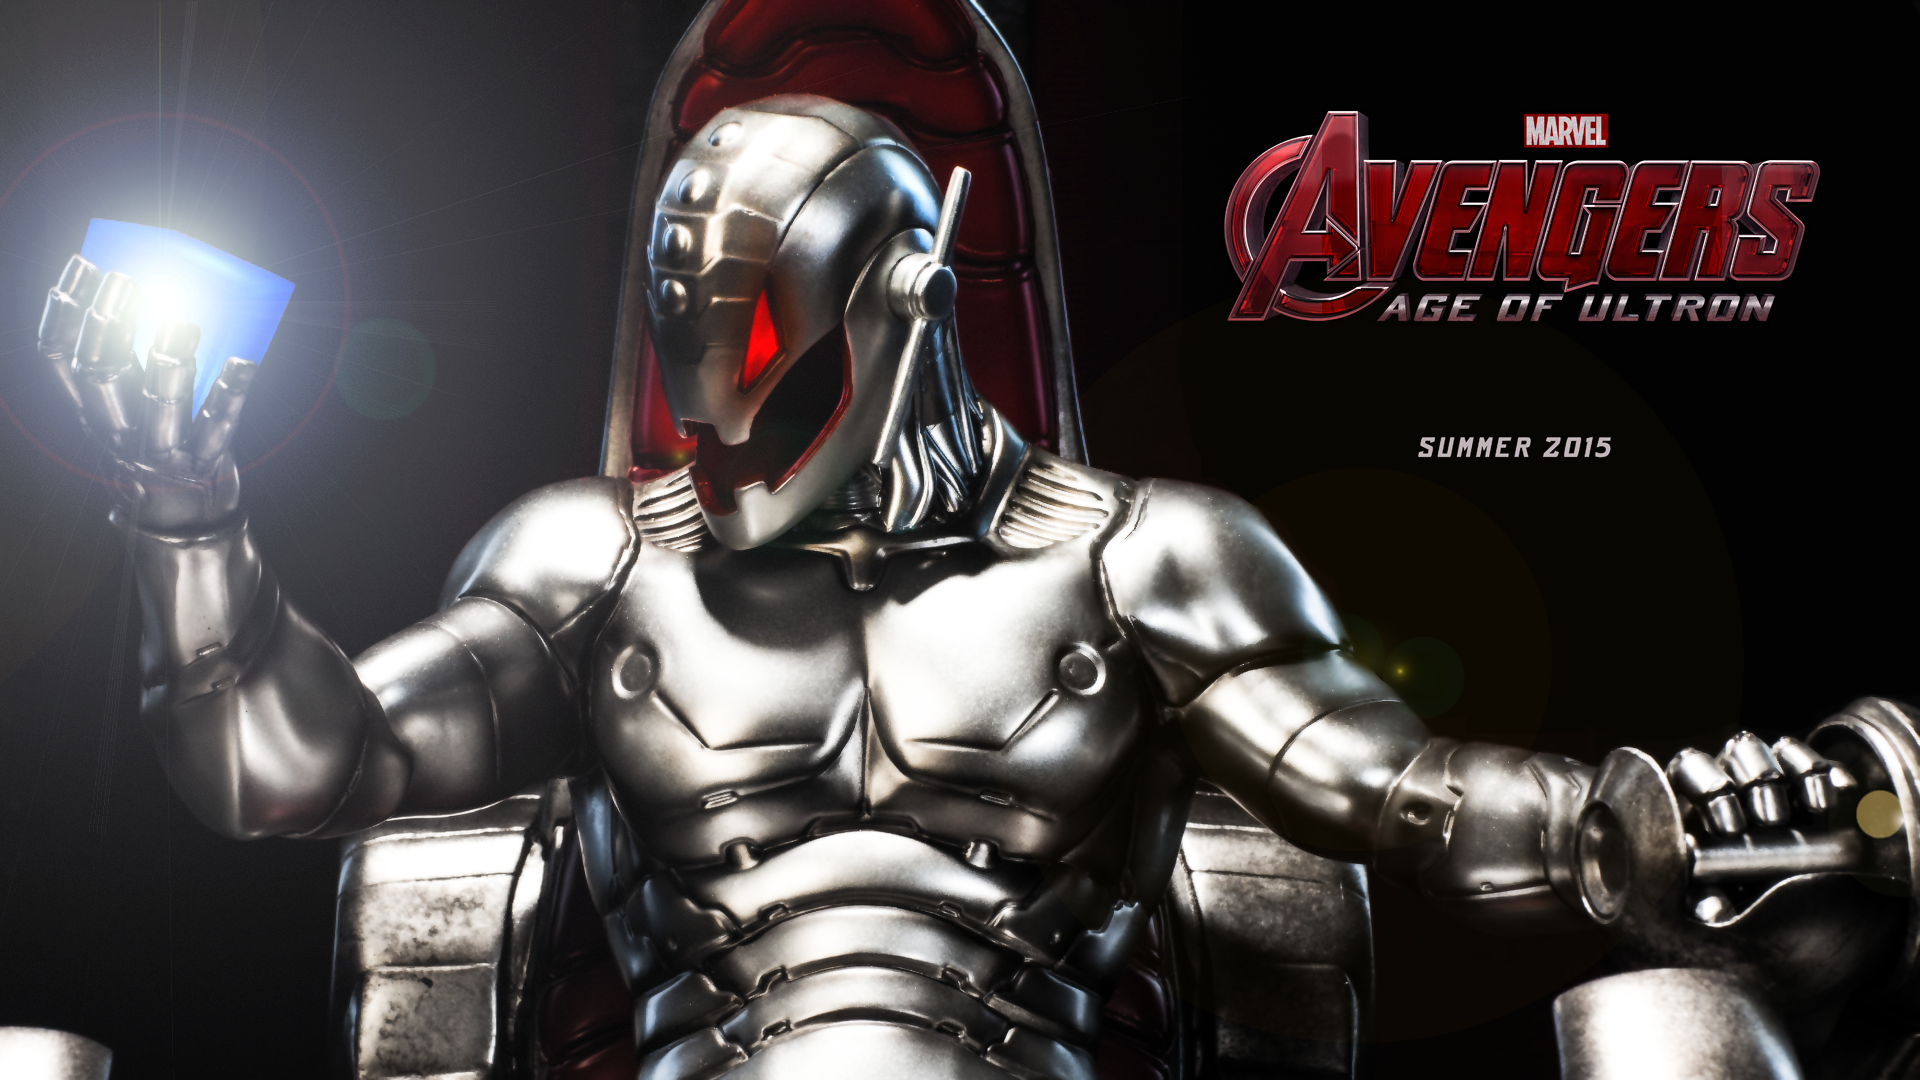 MARVEL The Avengers 2: Age Of Ultron Movie Poster by ...